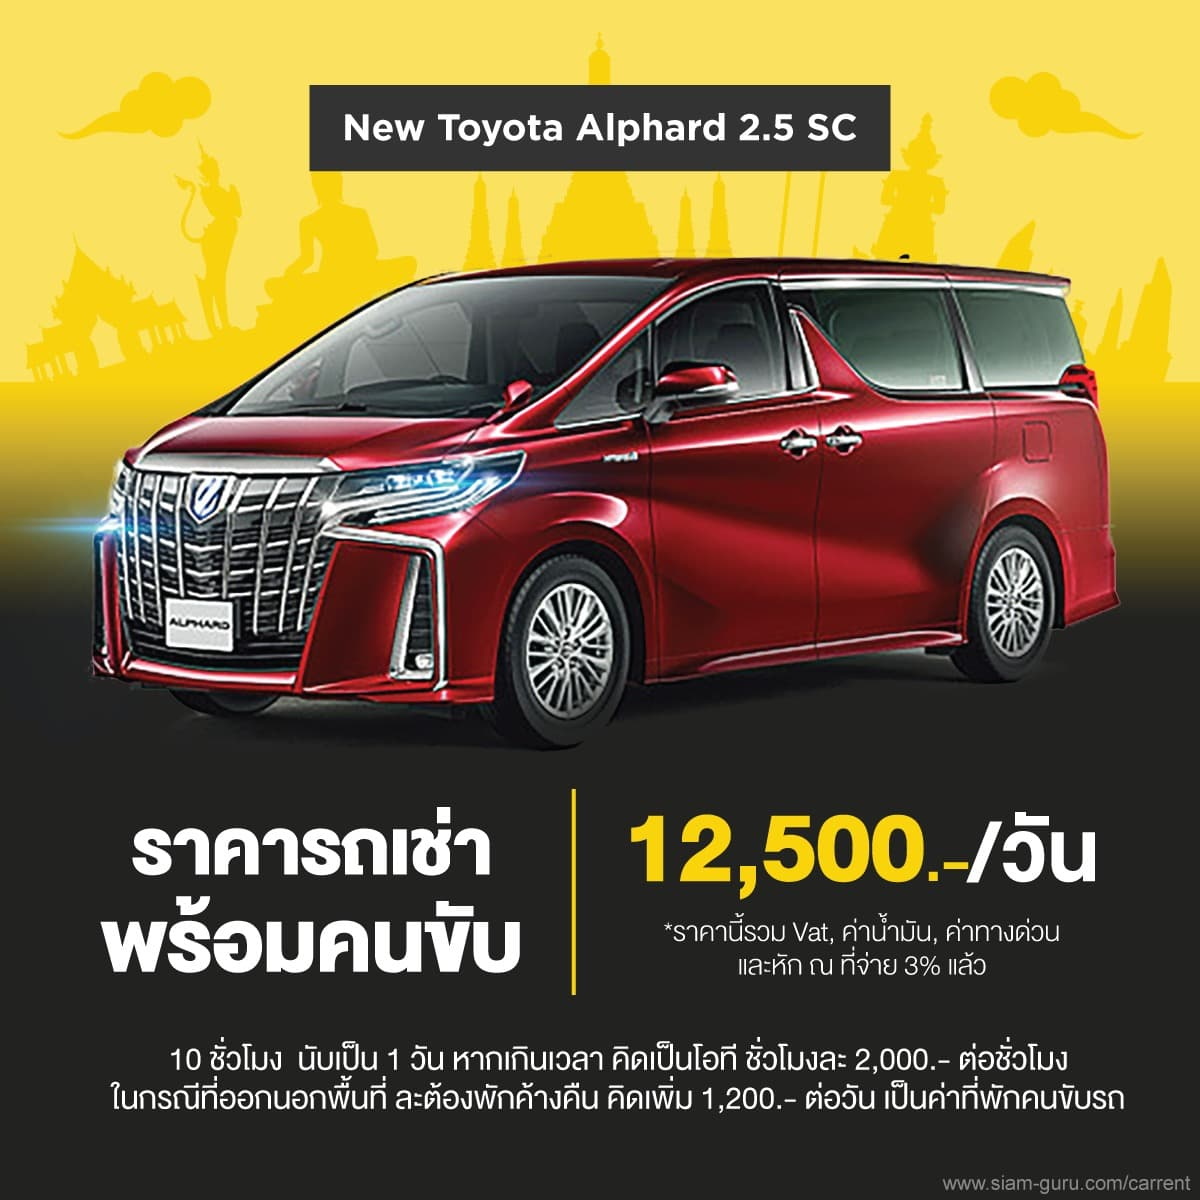 Luxury Van Rental With Driver in Bangkok.